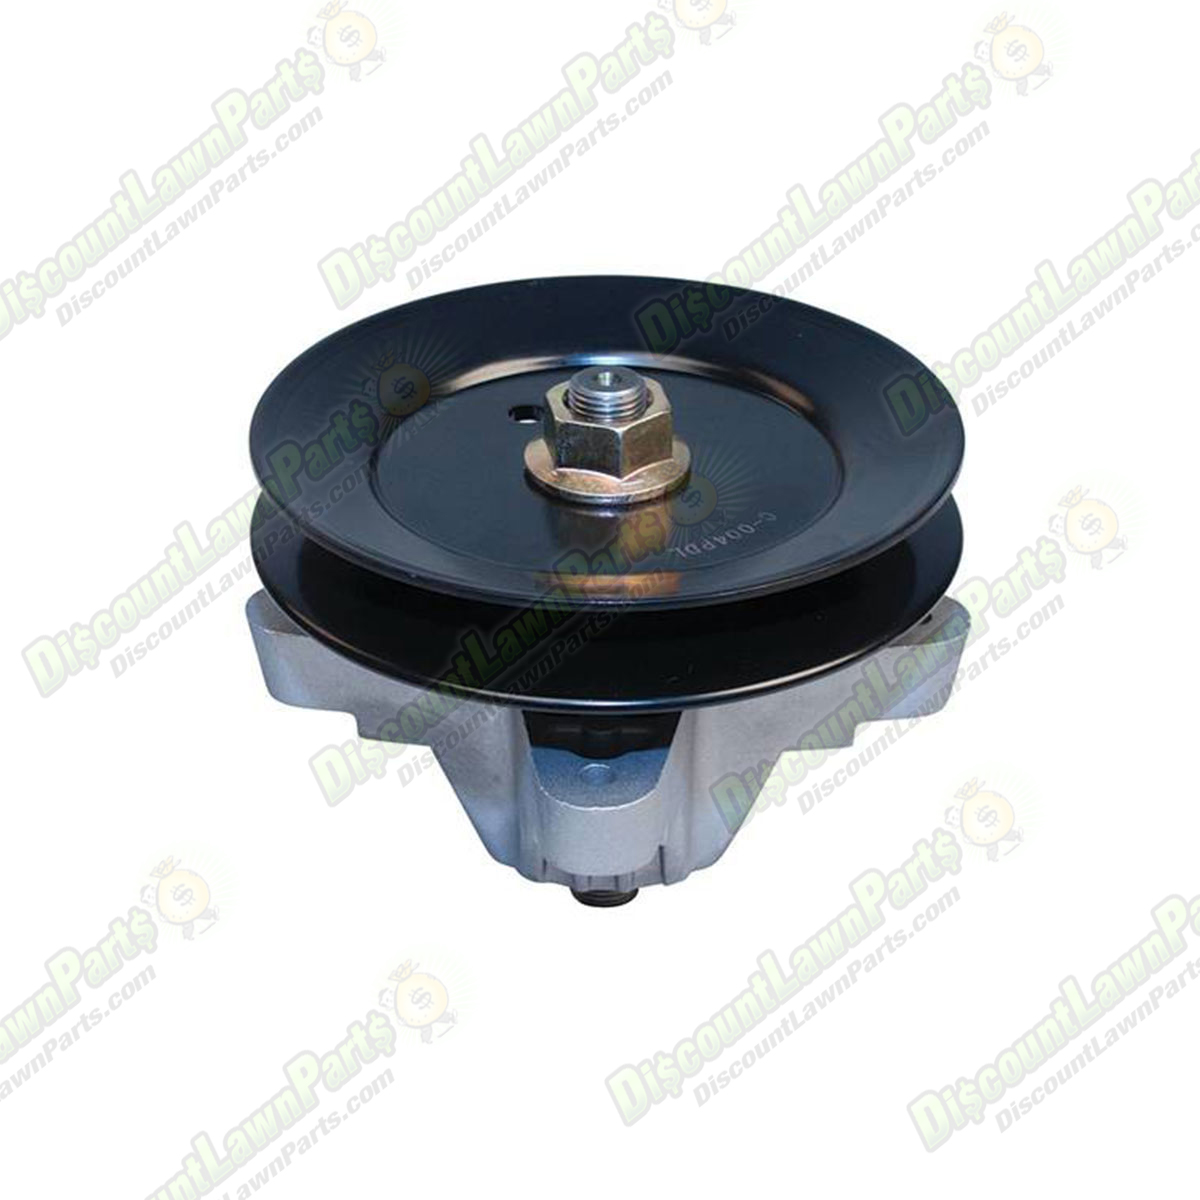 Lawn Mower Spindles For Blades : Spindle assembly mtd c discountlawnparts